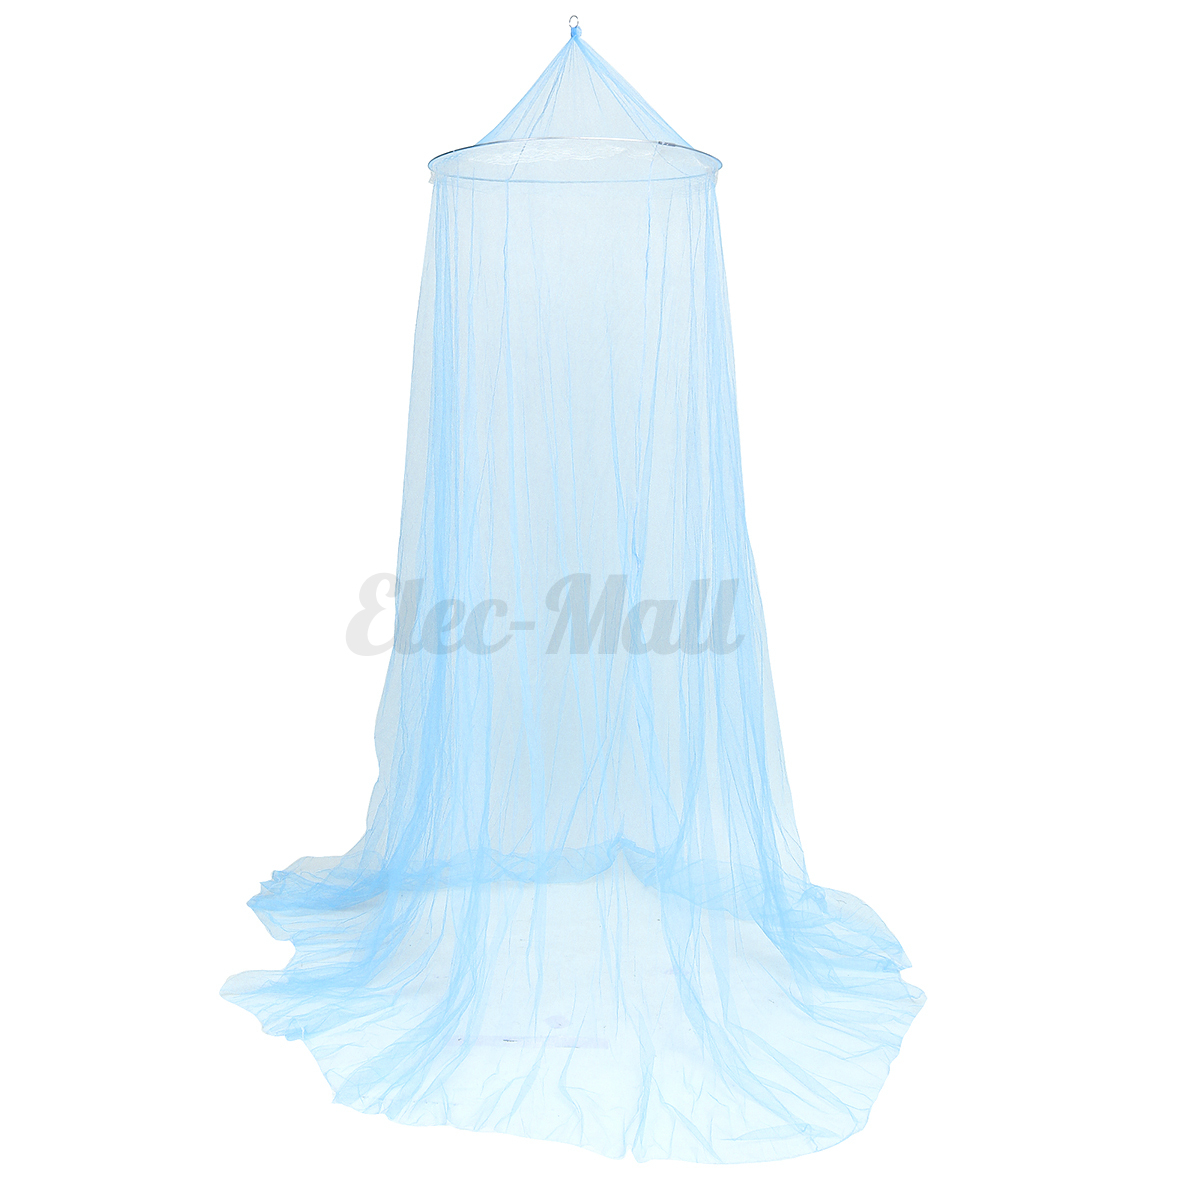 Mosquito net fly insect protection bed outdoor canopy for Bed with mosquito net decoration